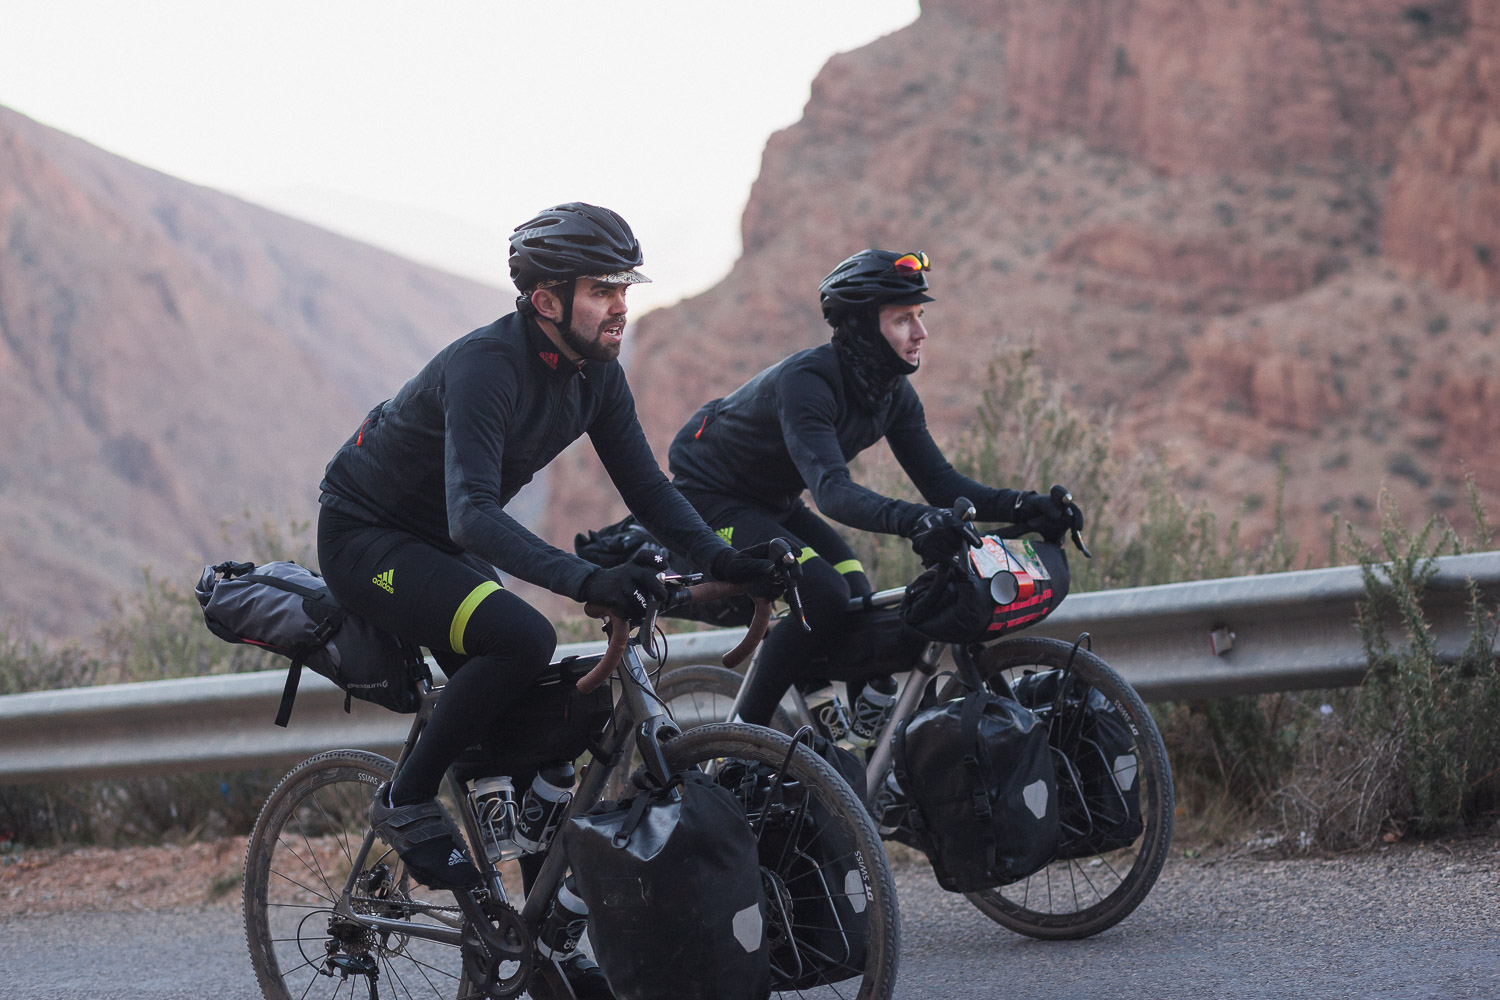 8bar bikes adventures morocco gravel 20151213 0032 bearbeitet - 8bar Adventures - Morocco - High Atlas - Part 2/2